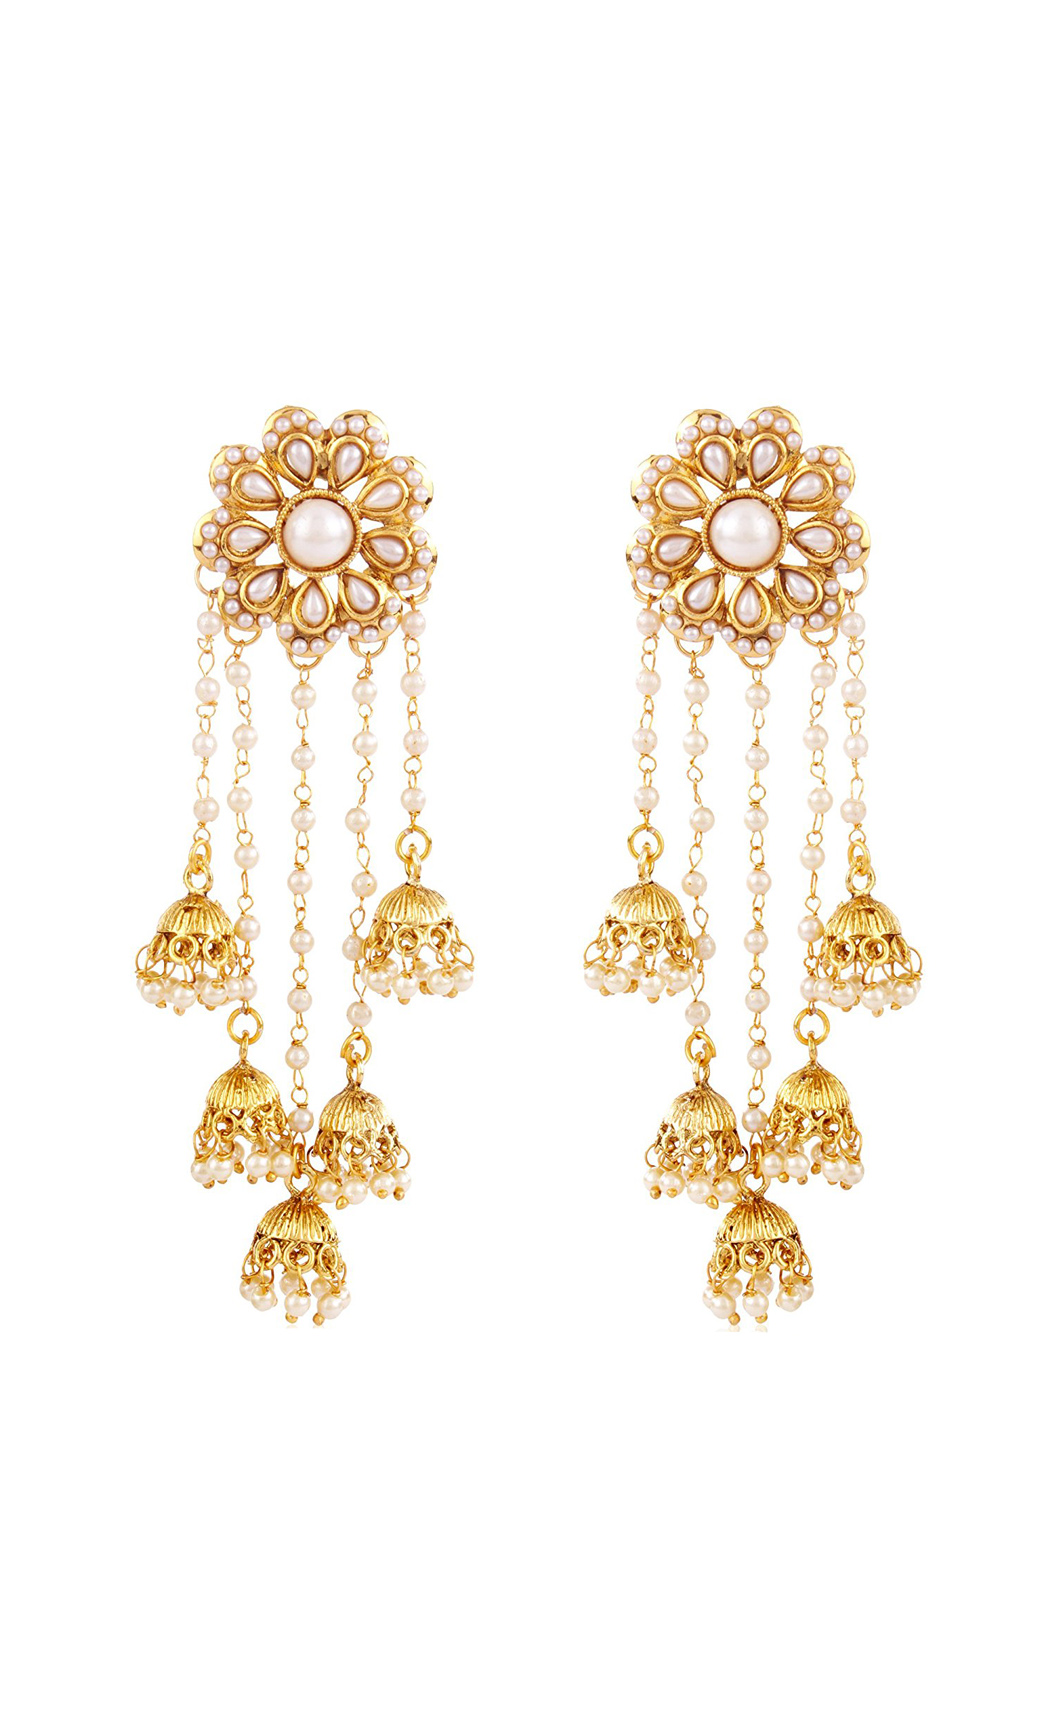 Gold Floral Dangler Earrings with Small Jhumkas and Pearls | Wedding Earrings| Buy Online